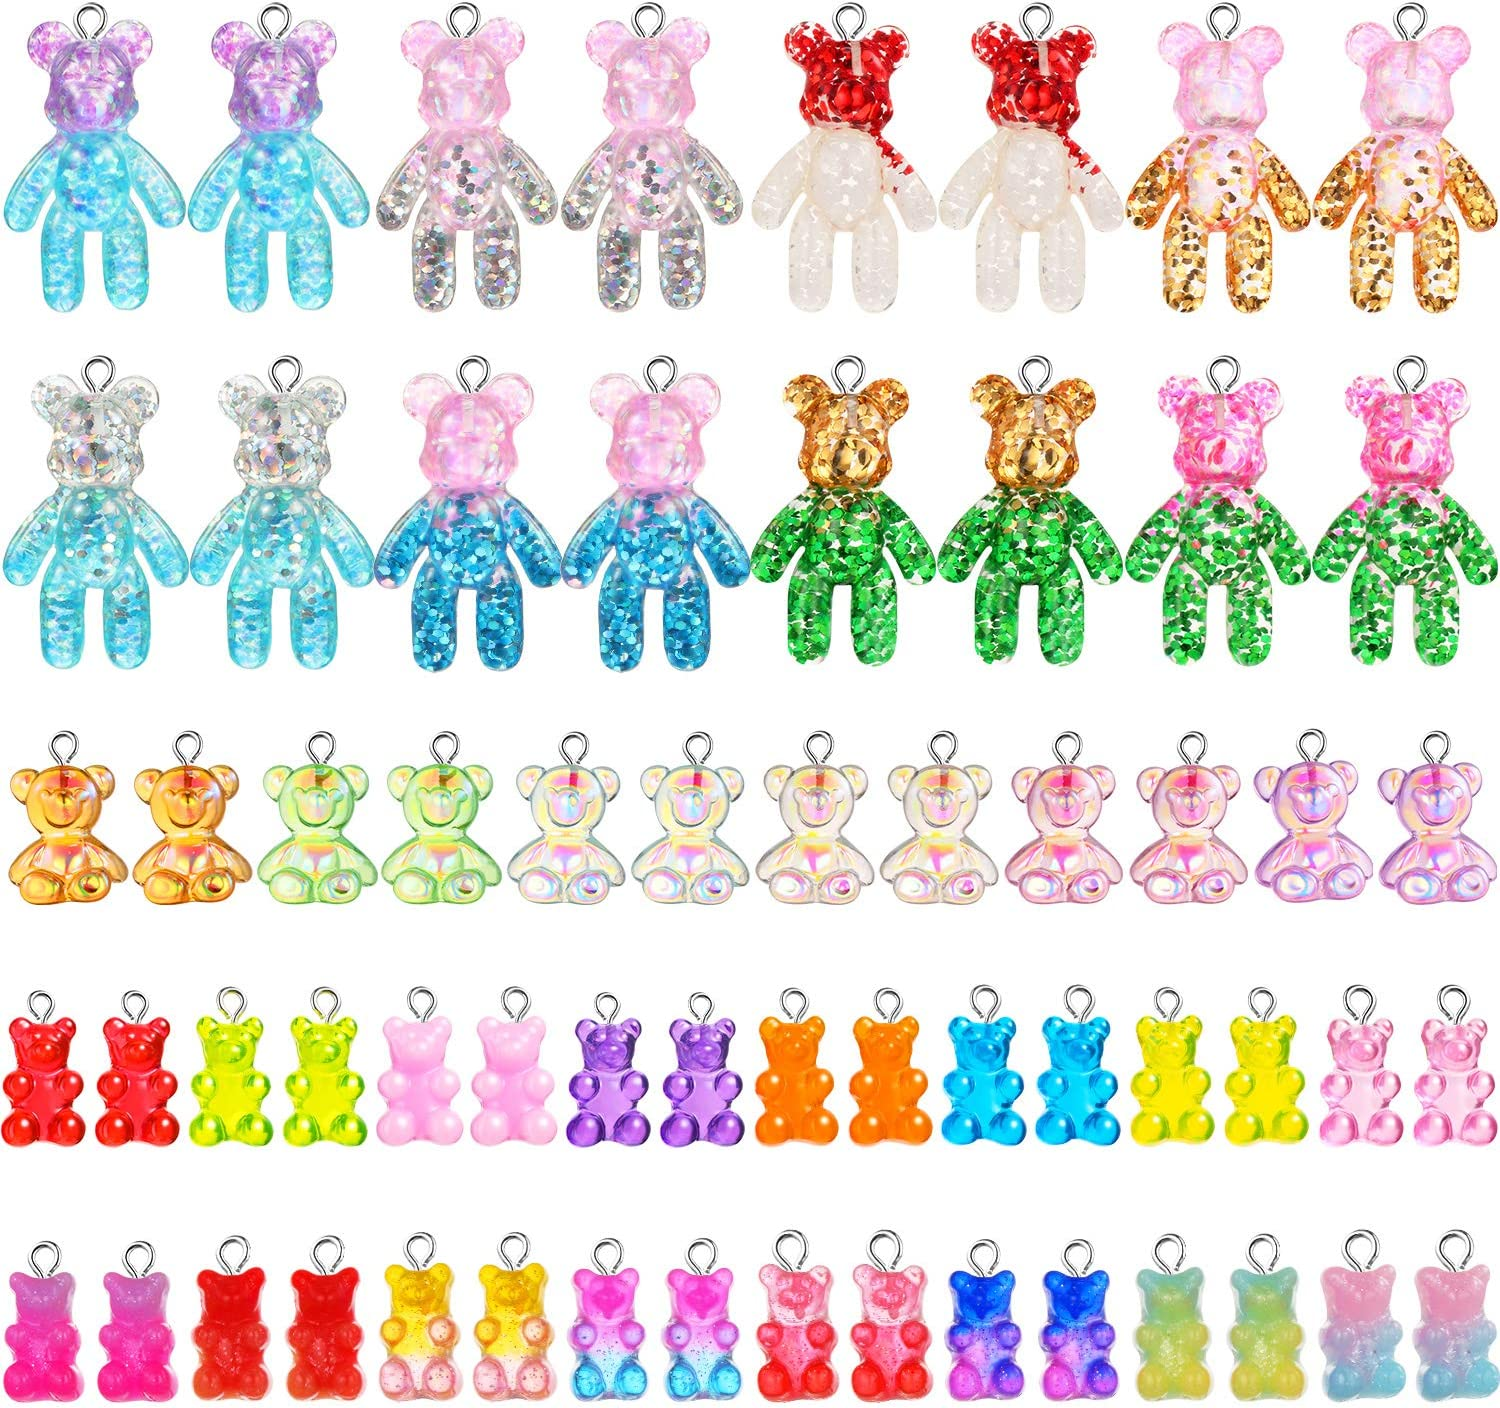 60 Pieces Oakland Mall Colorful Gummy New product!! Charms Keychain Pendant Bear Resin